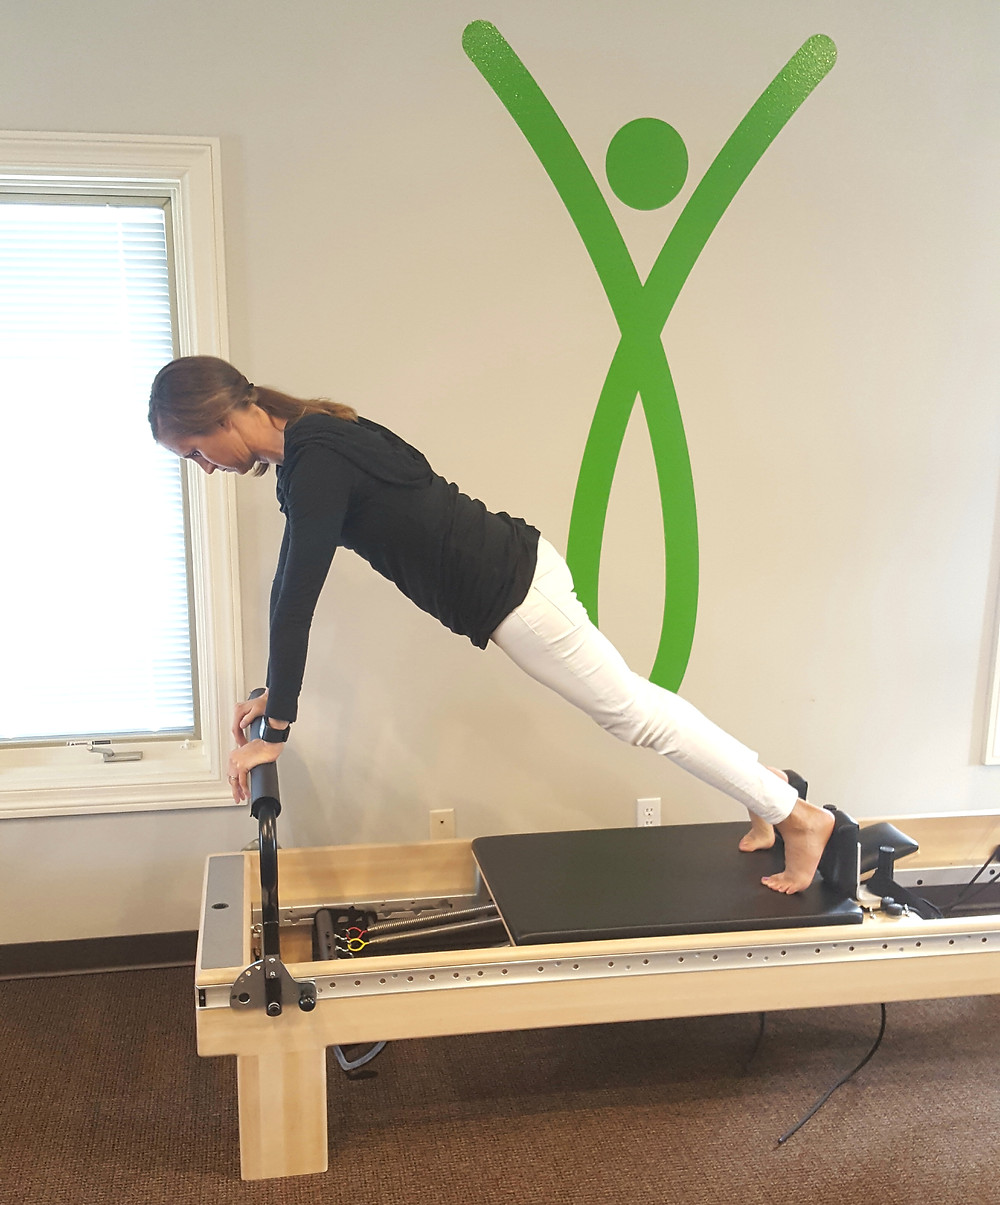 Angie exercising on the Pilates Reformer